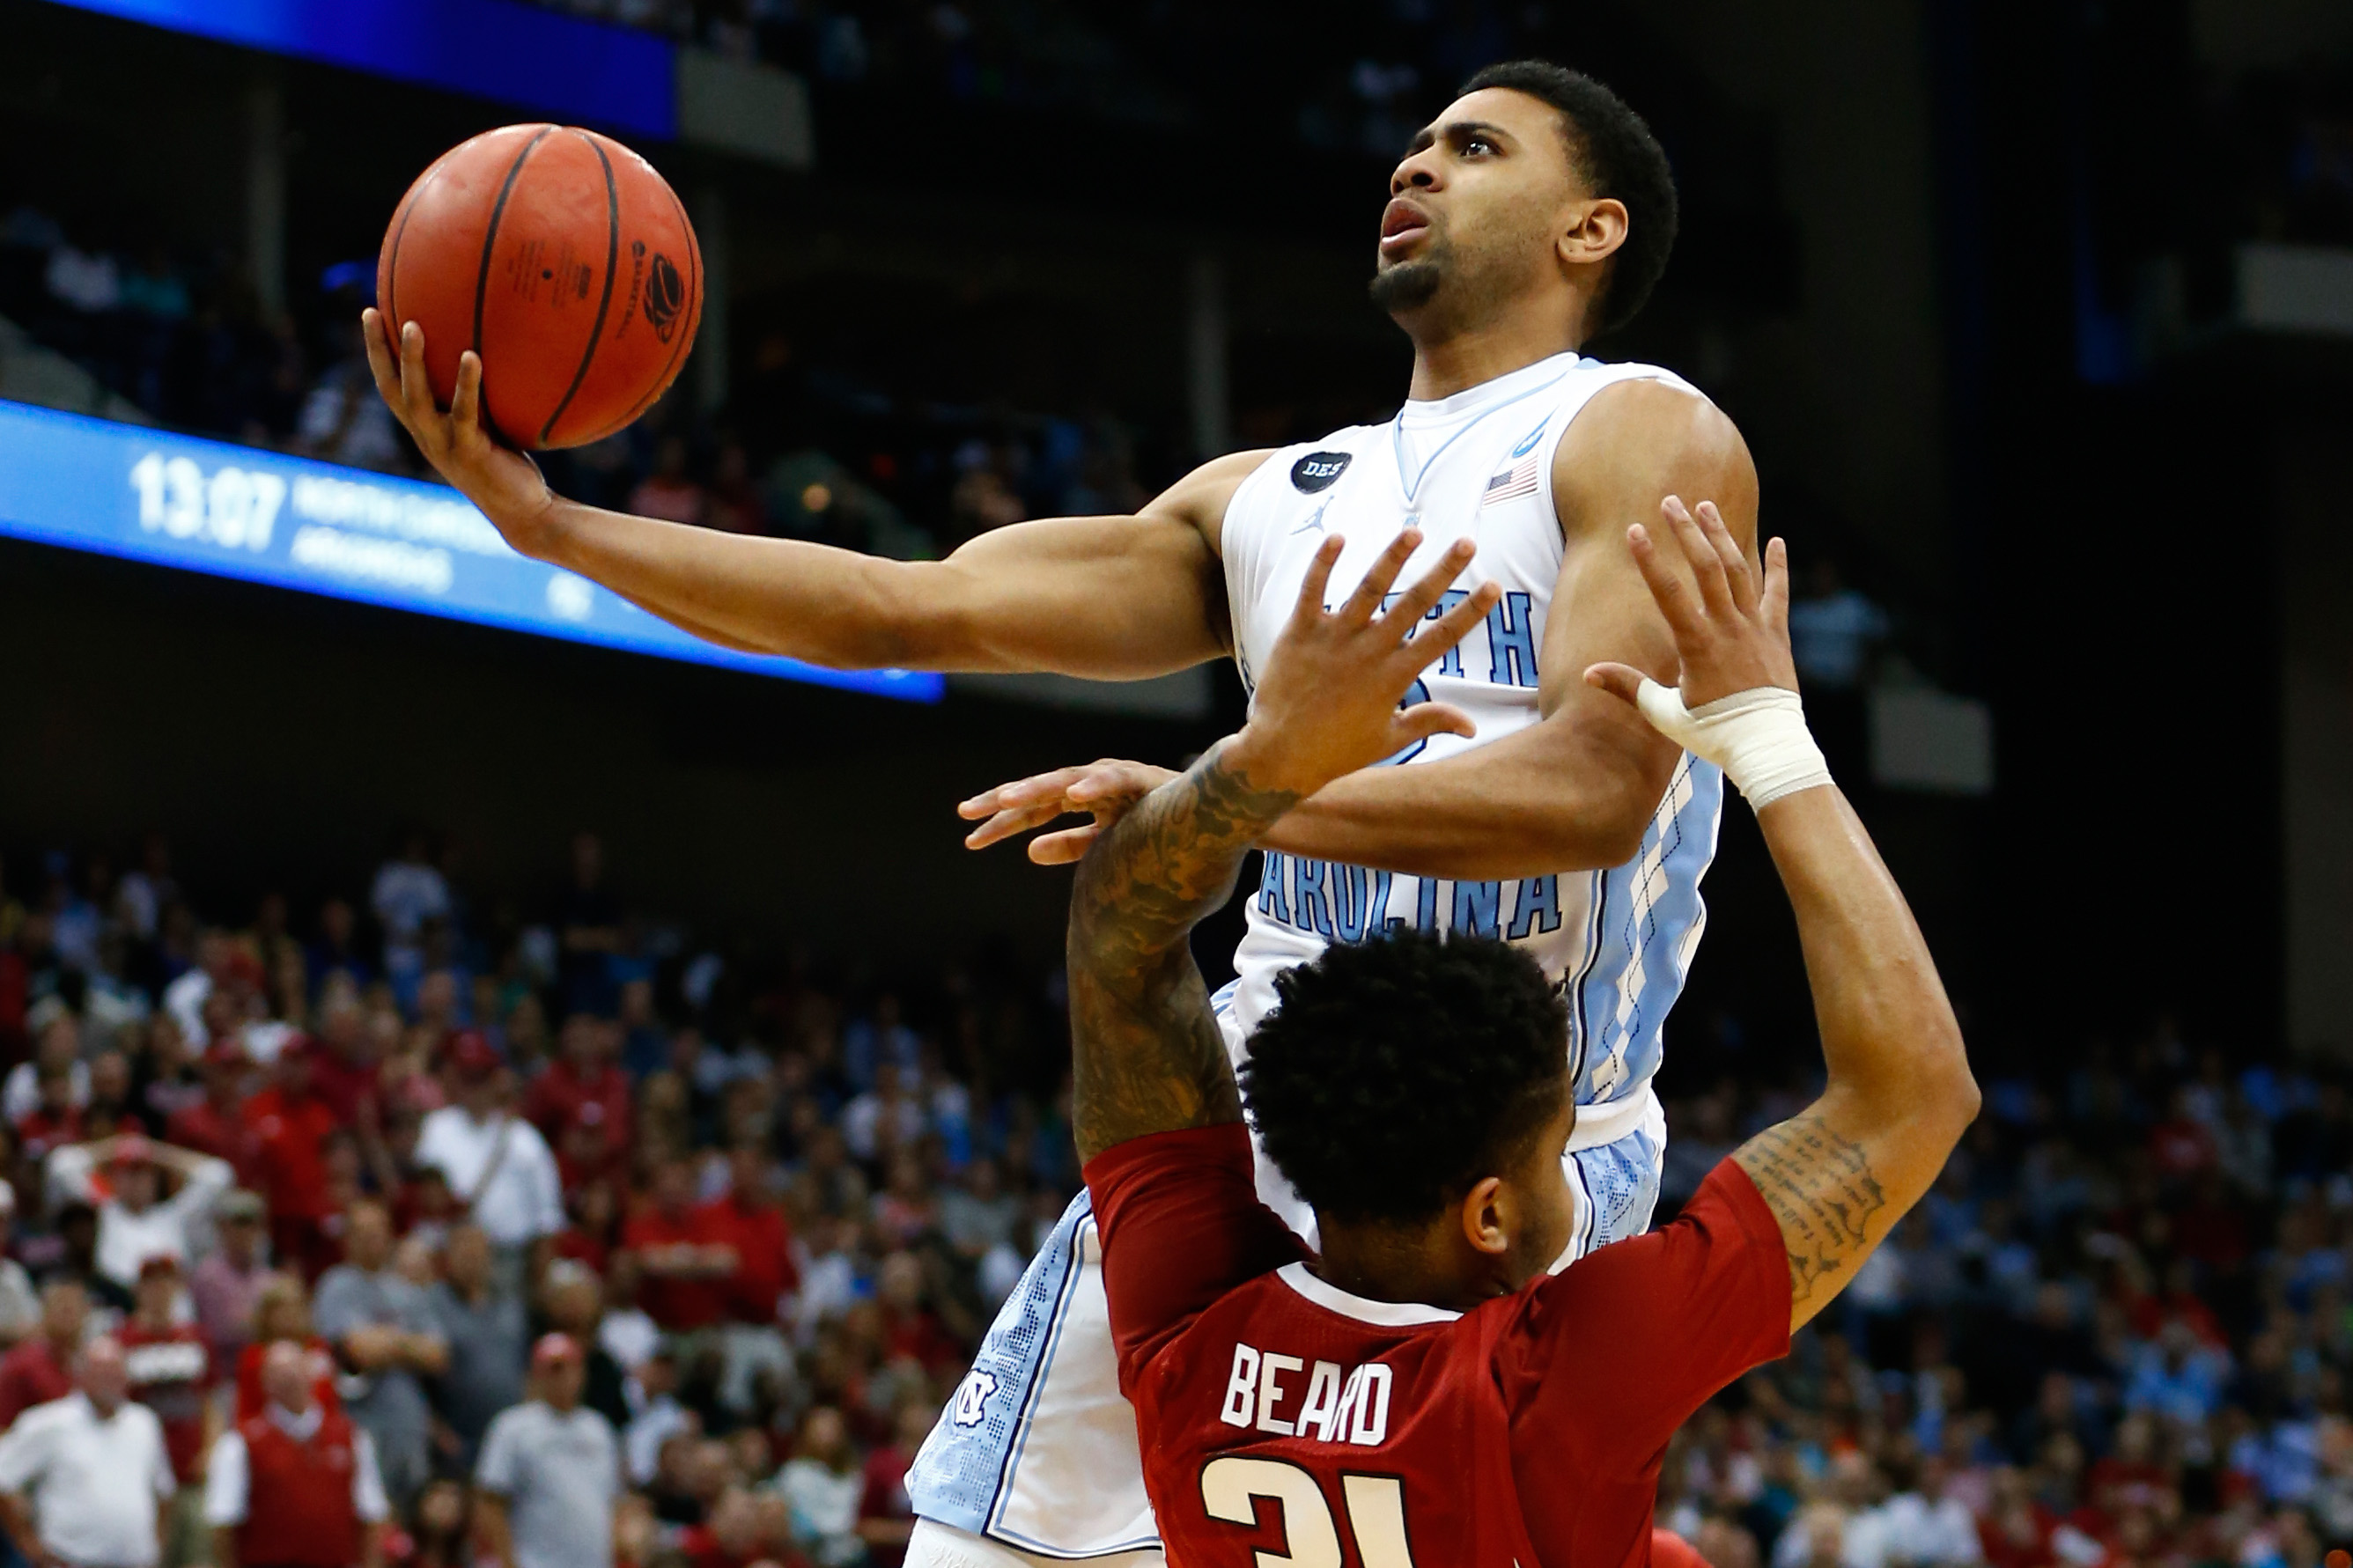 North Carolina beat Arkansas 87-78 in the second round of the 2015 NCAA Tournament.